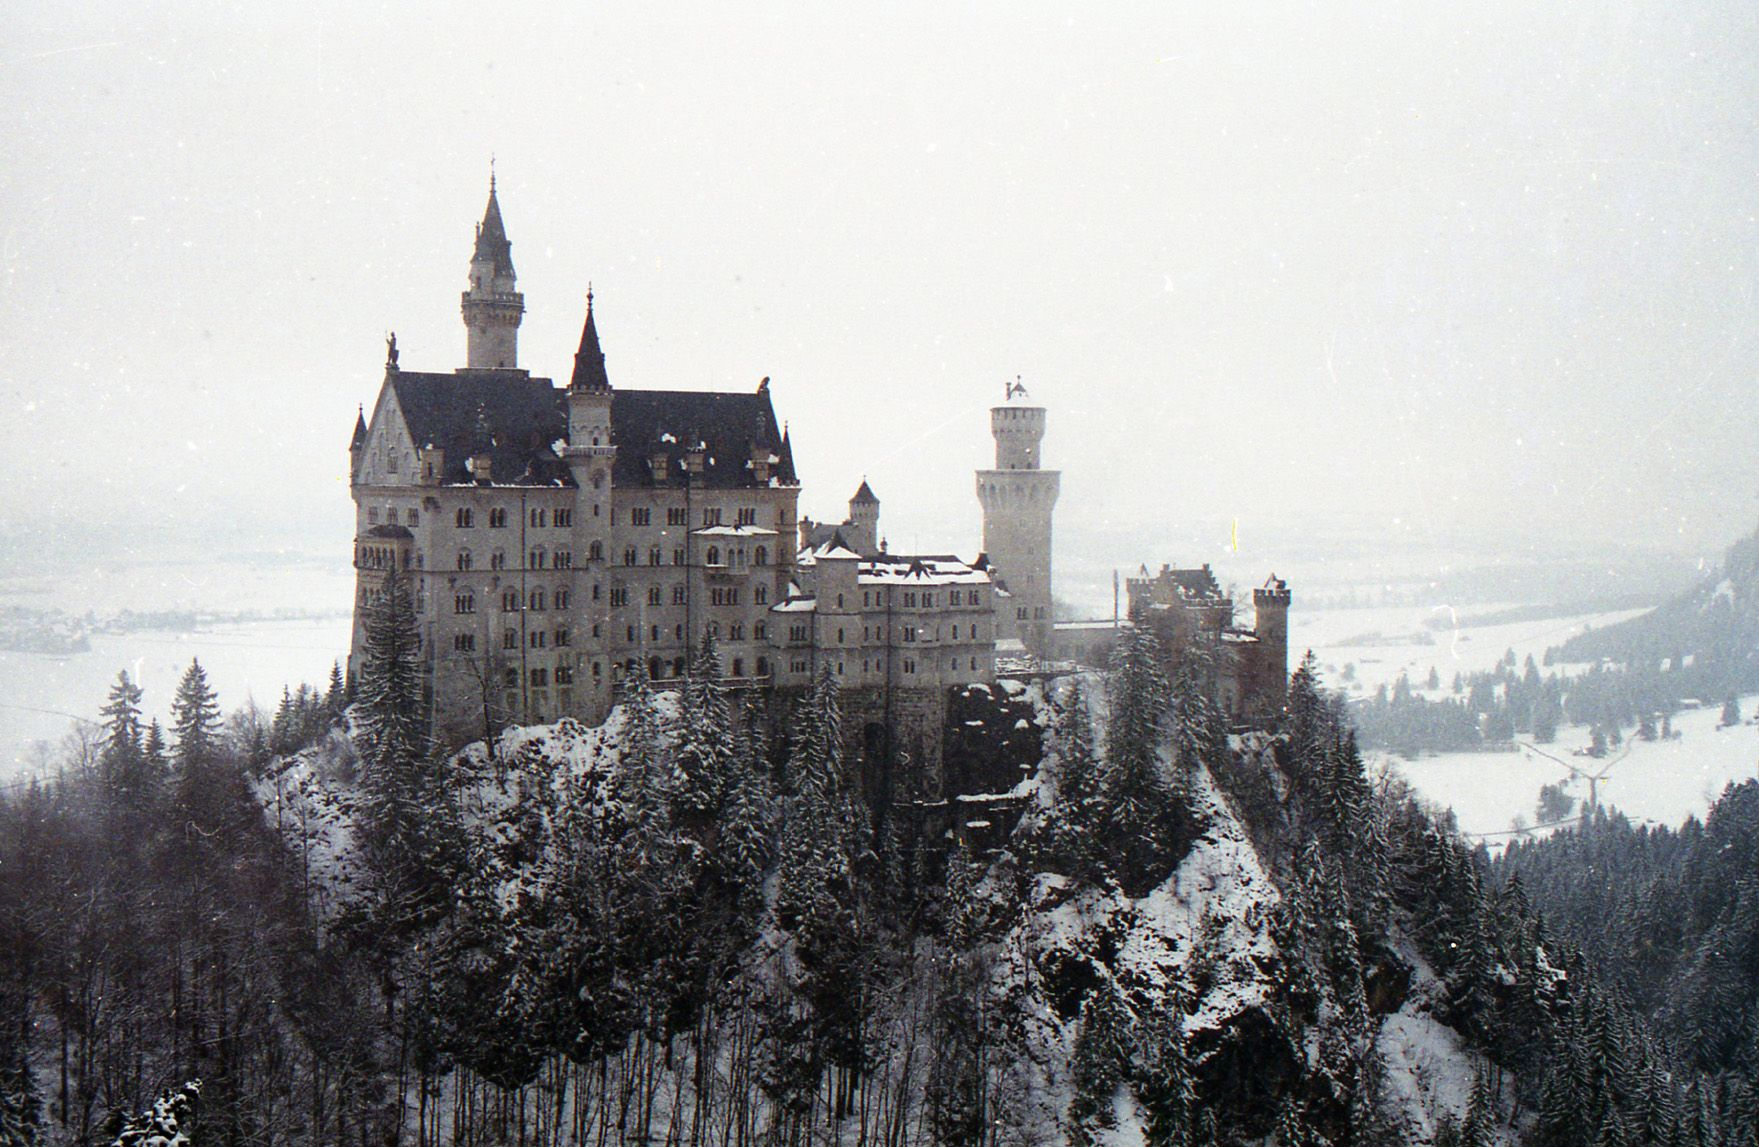 nueschwanstien castle, germany